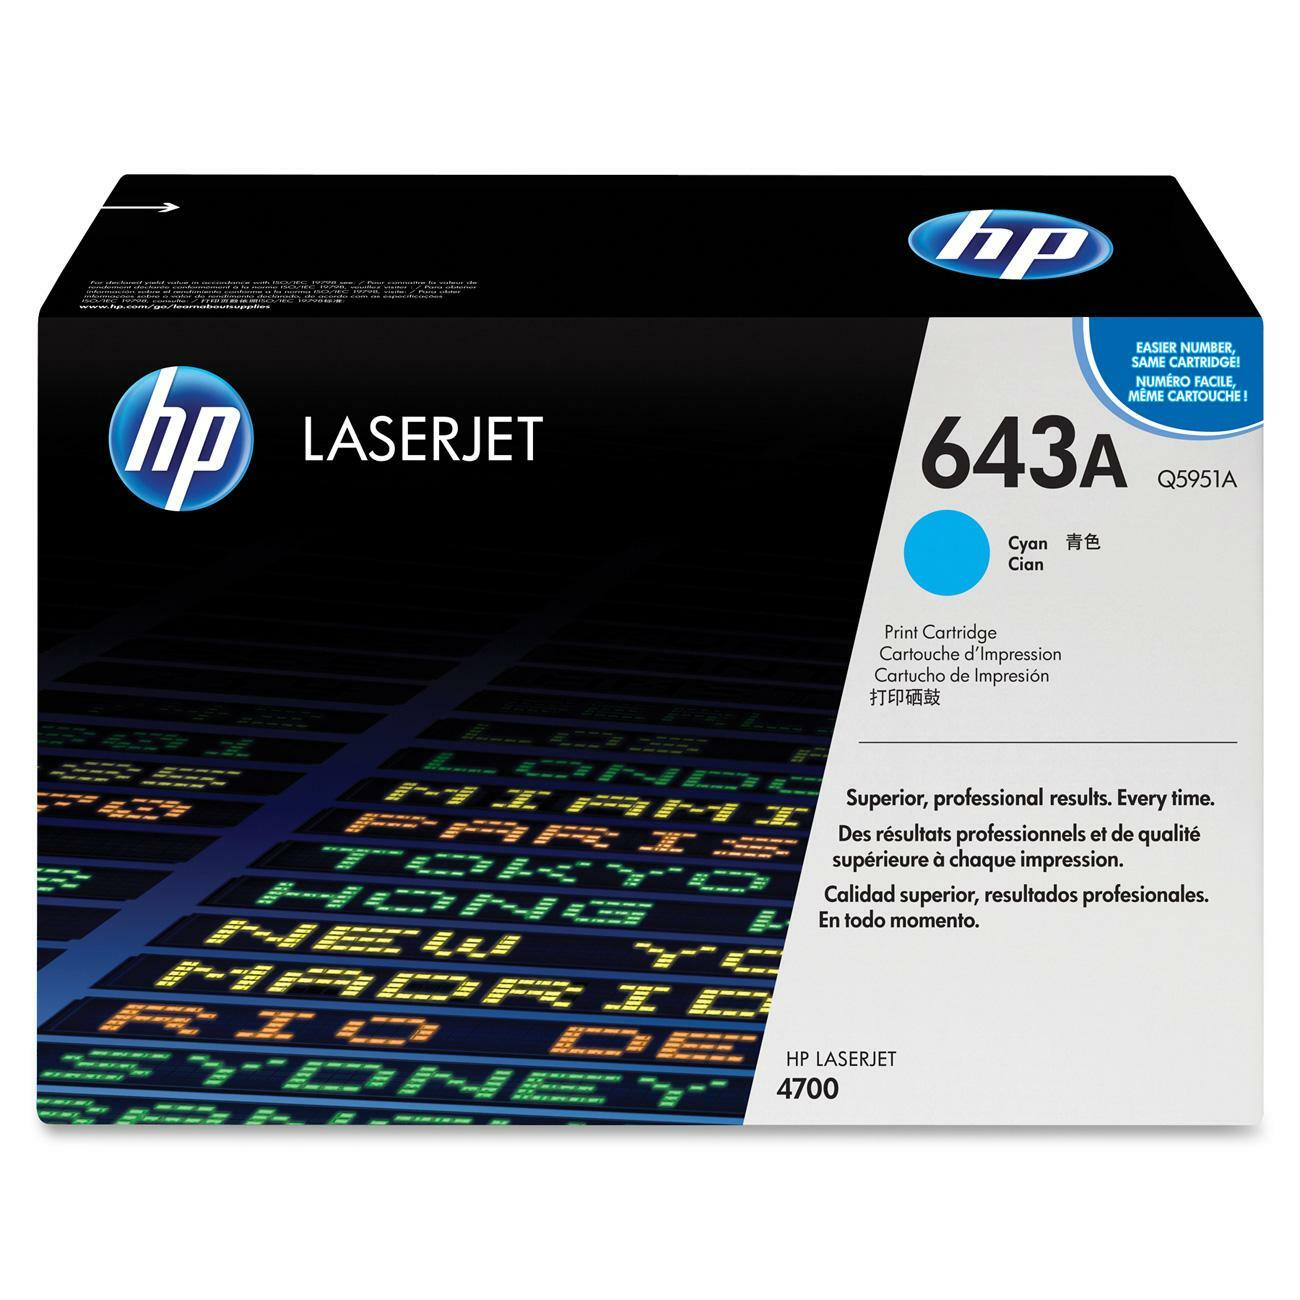 HP 643A Cyan Toner Cartridge